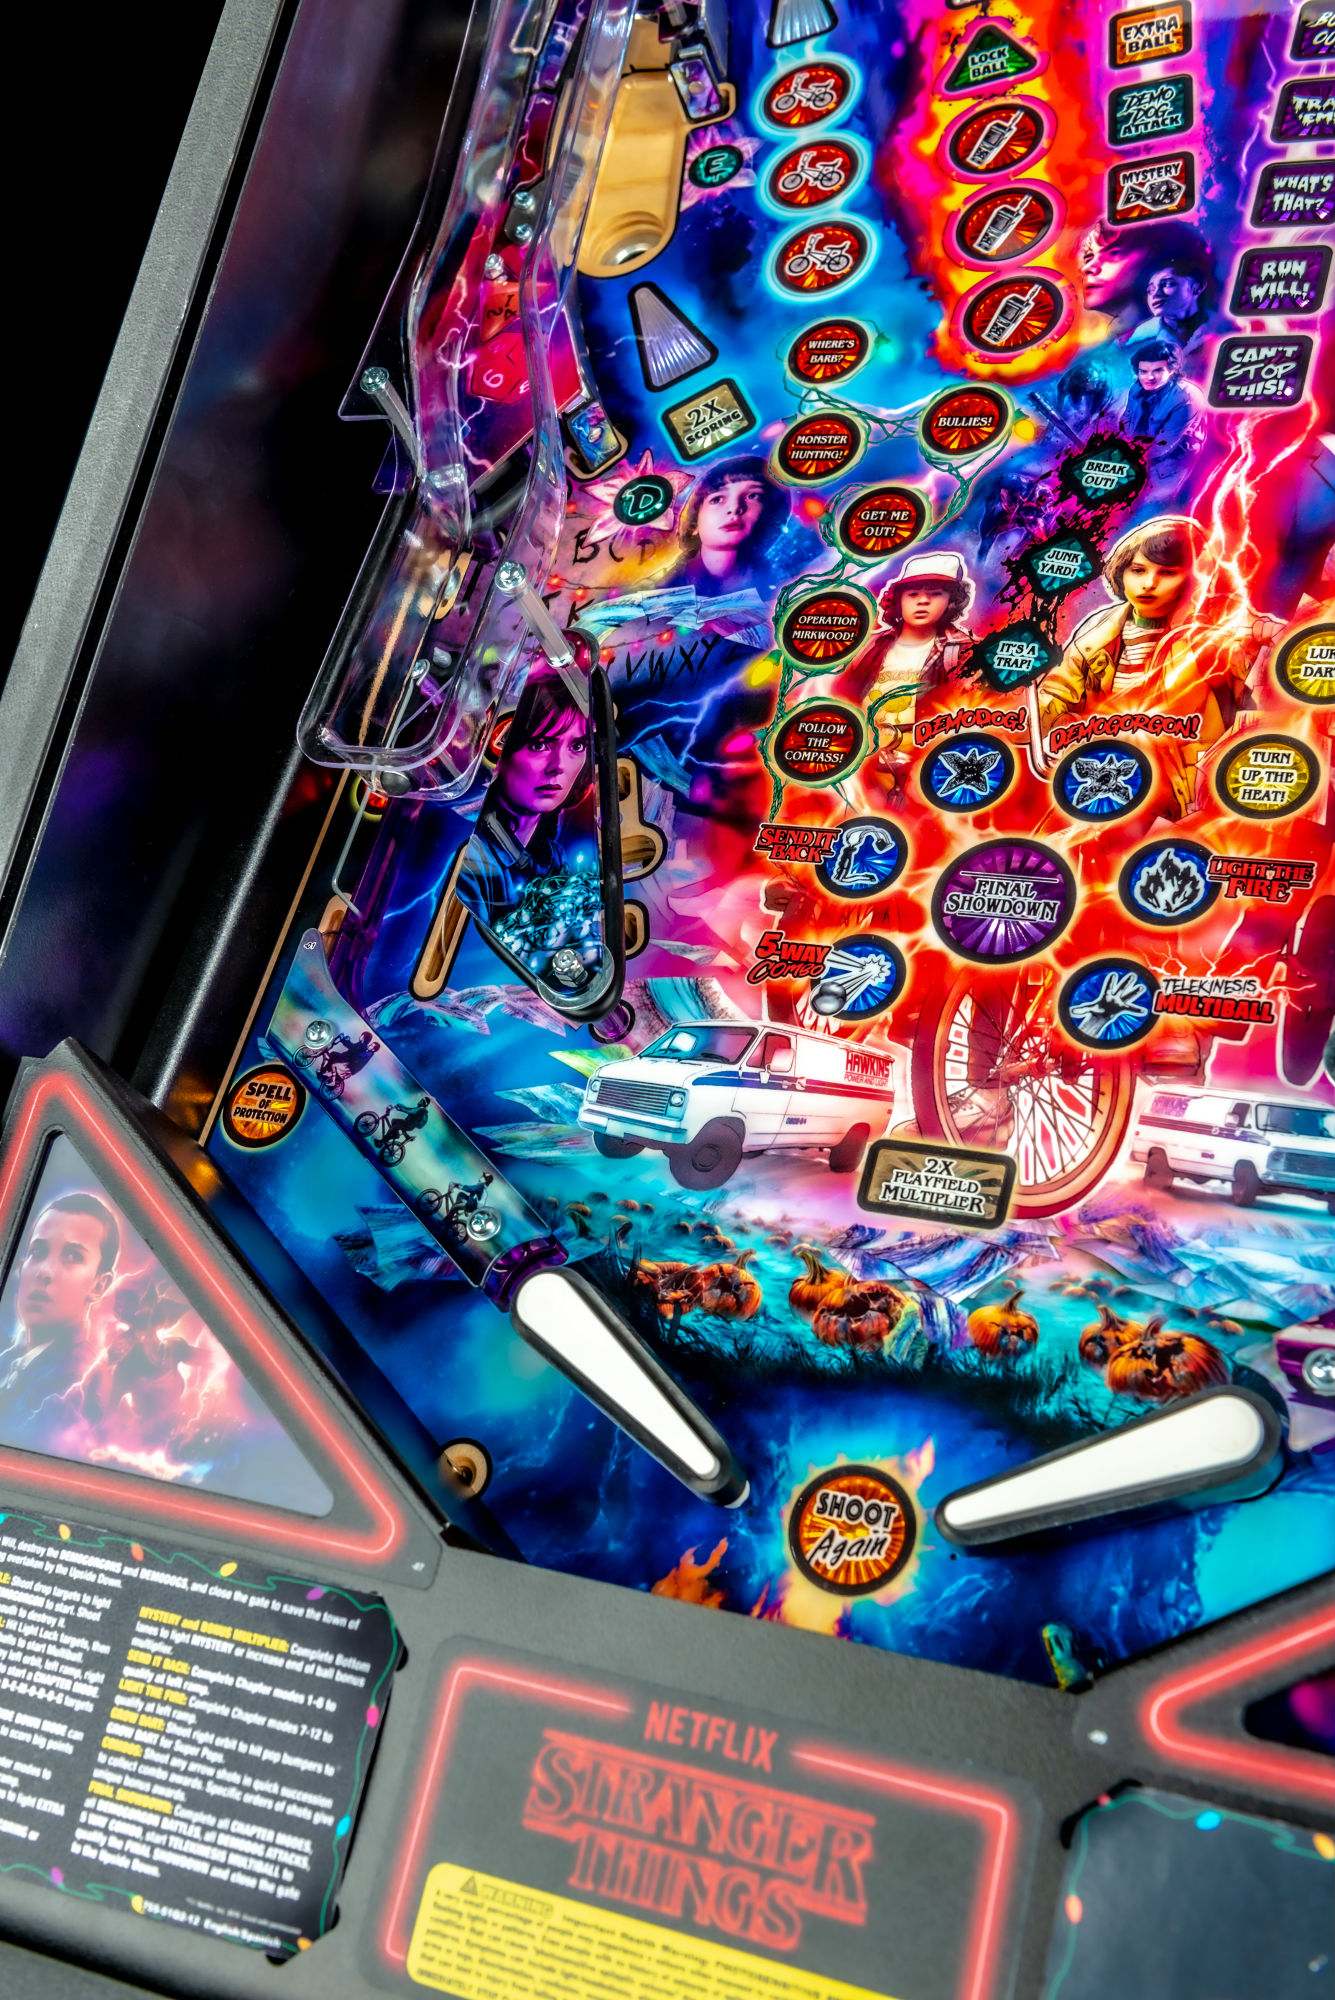 Stranger-Things-Pinball-Machine-Premium-